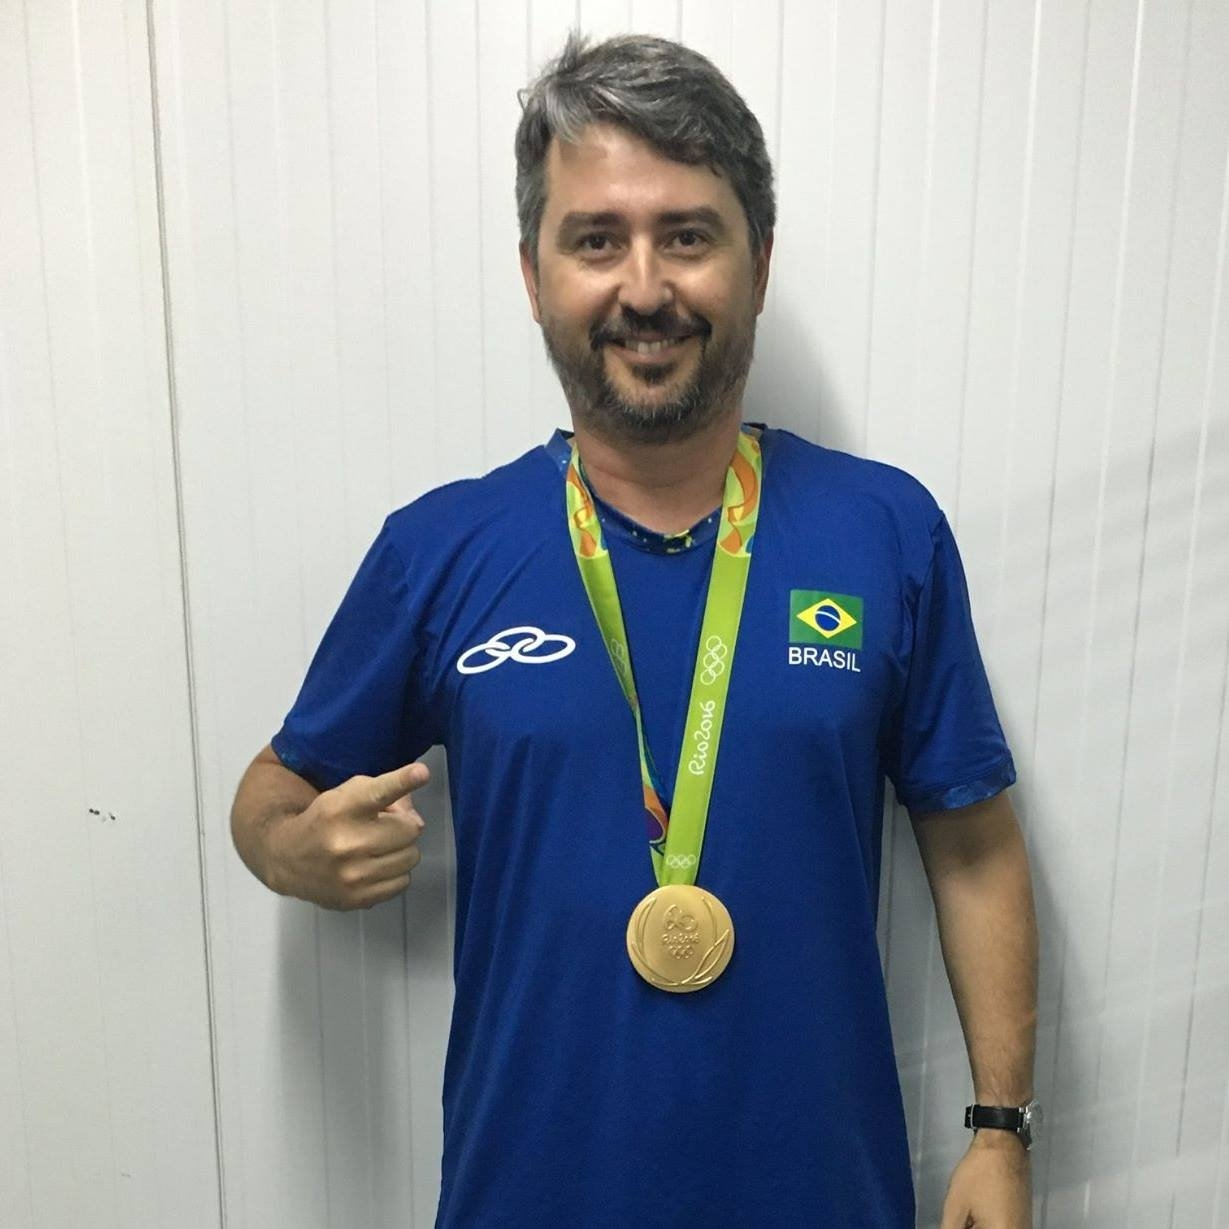 Marco Char was part of Alison and Bruno's staff during their victorious Rio 2016 campaign